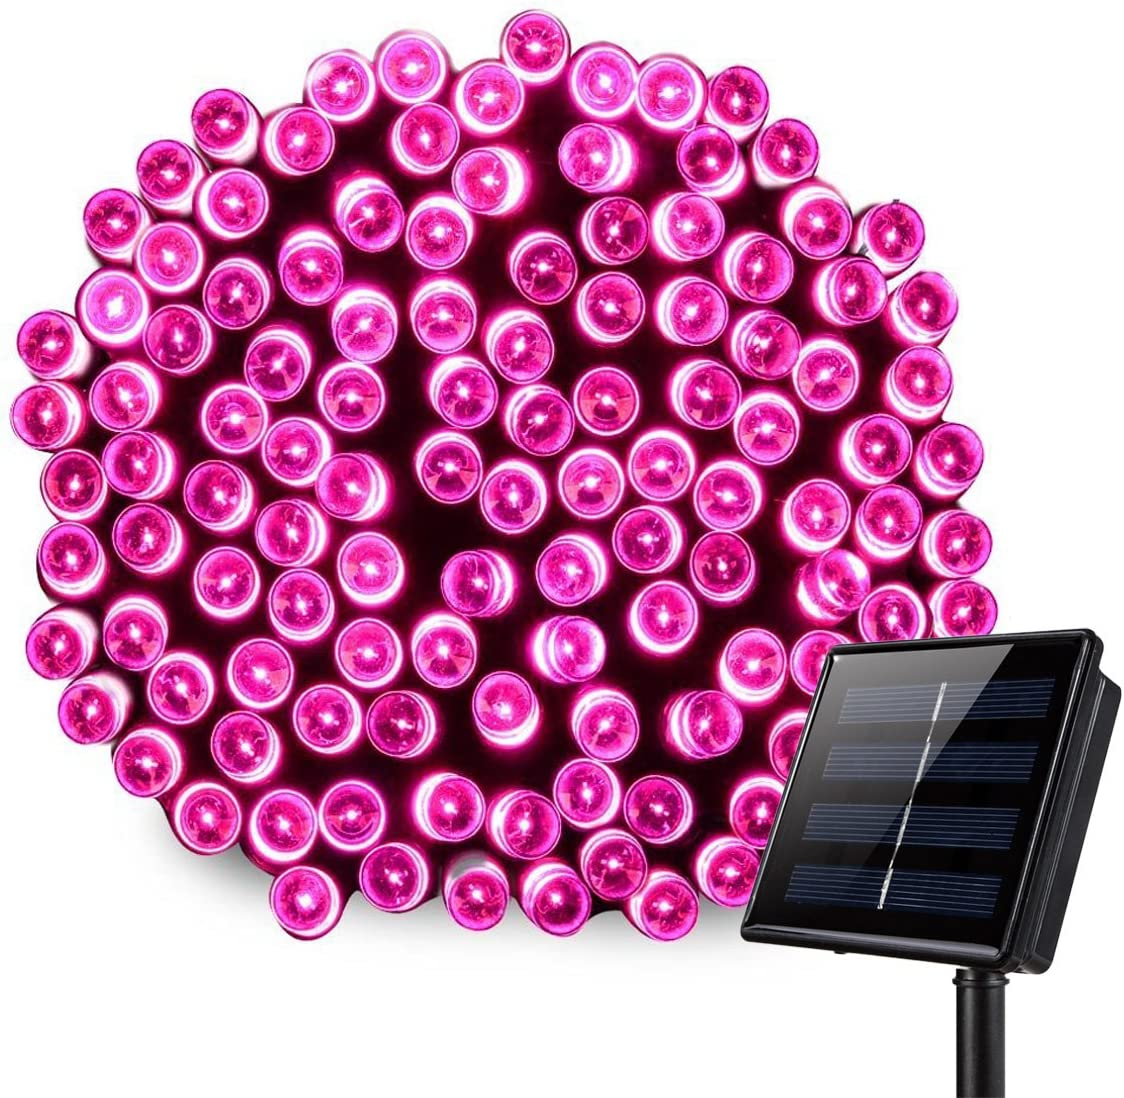 Outdoor Solar String Lights,8 Modes WONFAST Waterproof 72ft 200led Solar Christmas Fairy Lights Ambiance Lighting for Camping, Garden, Patio, Backyard, Fence and Holiday Decorations Pink